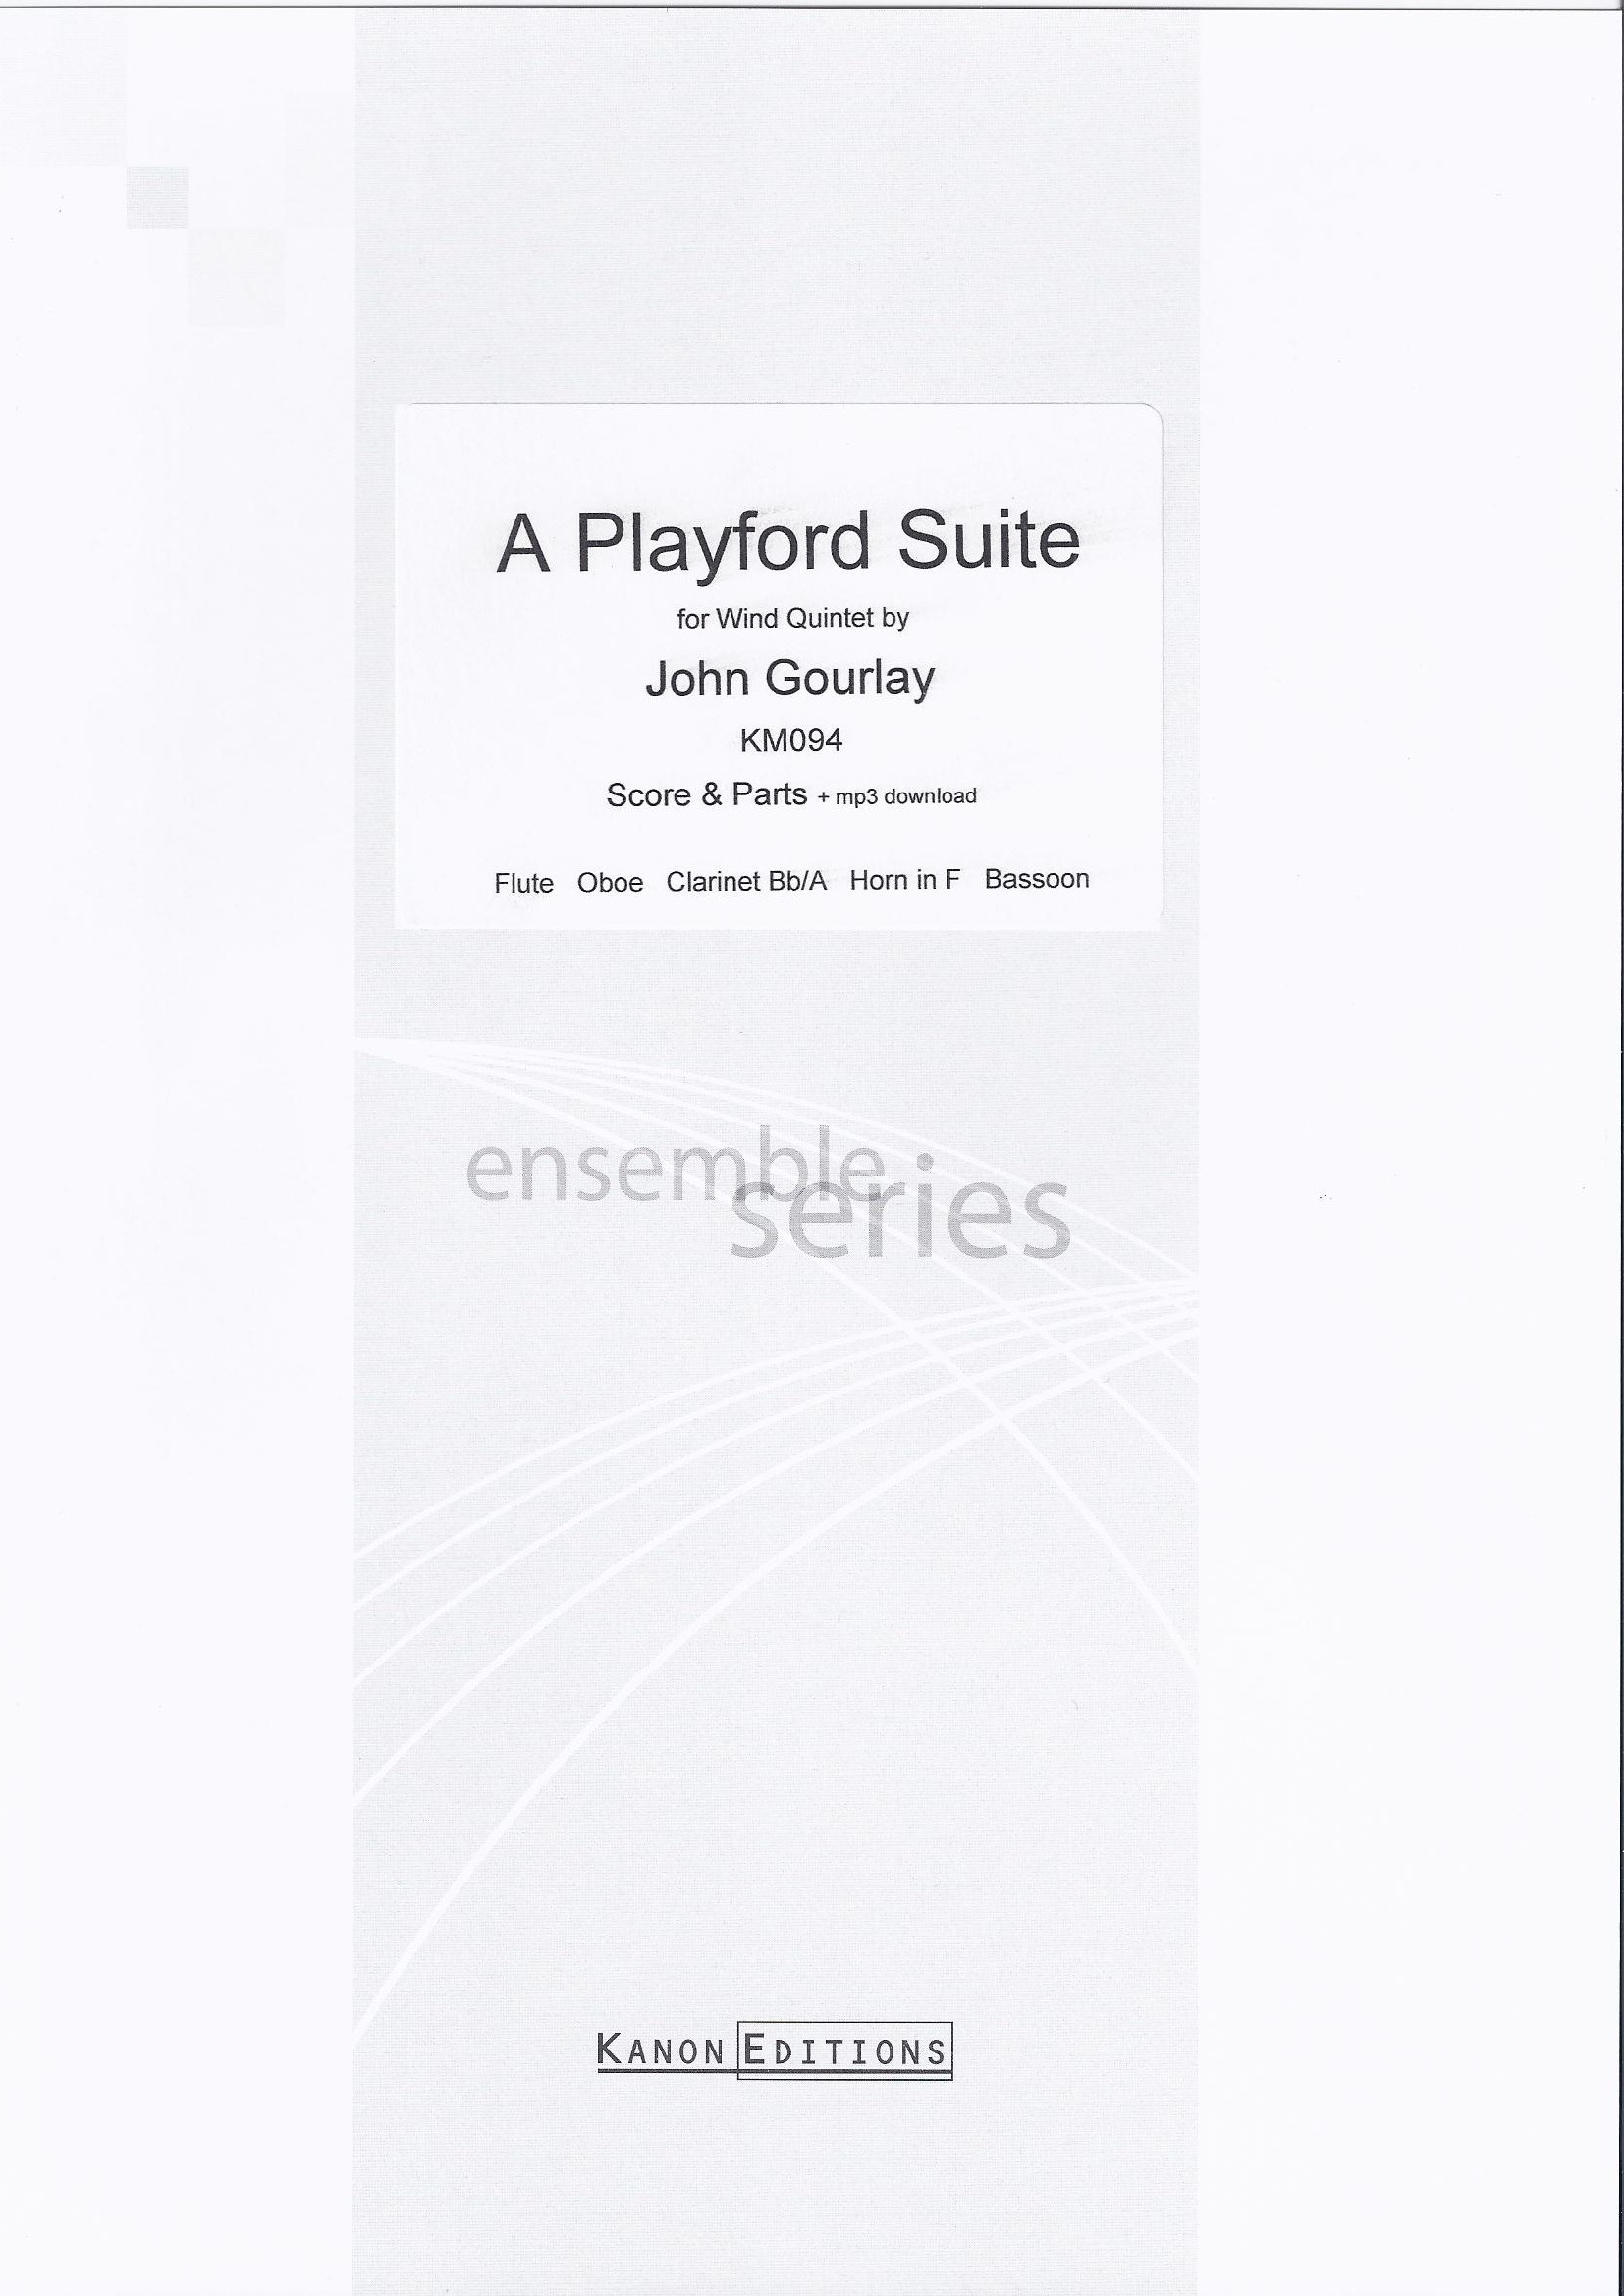 A PLAYFORD SUITE score & parts